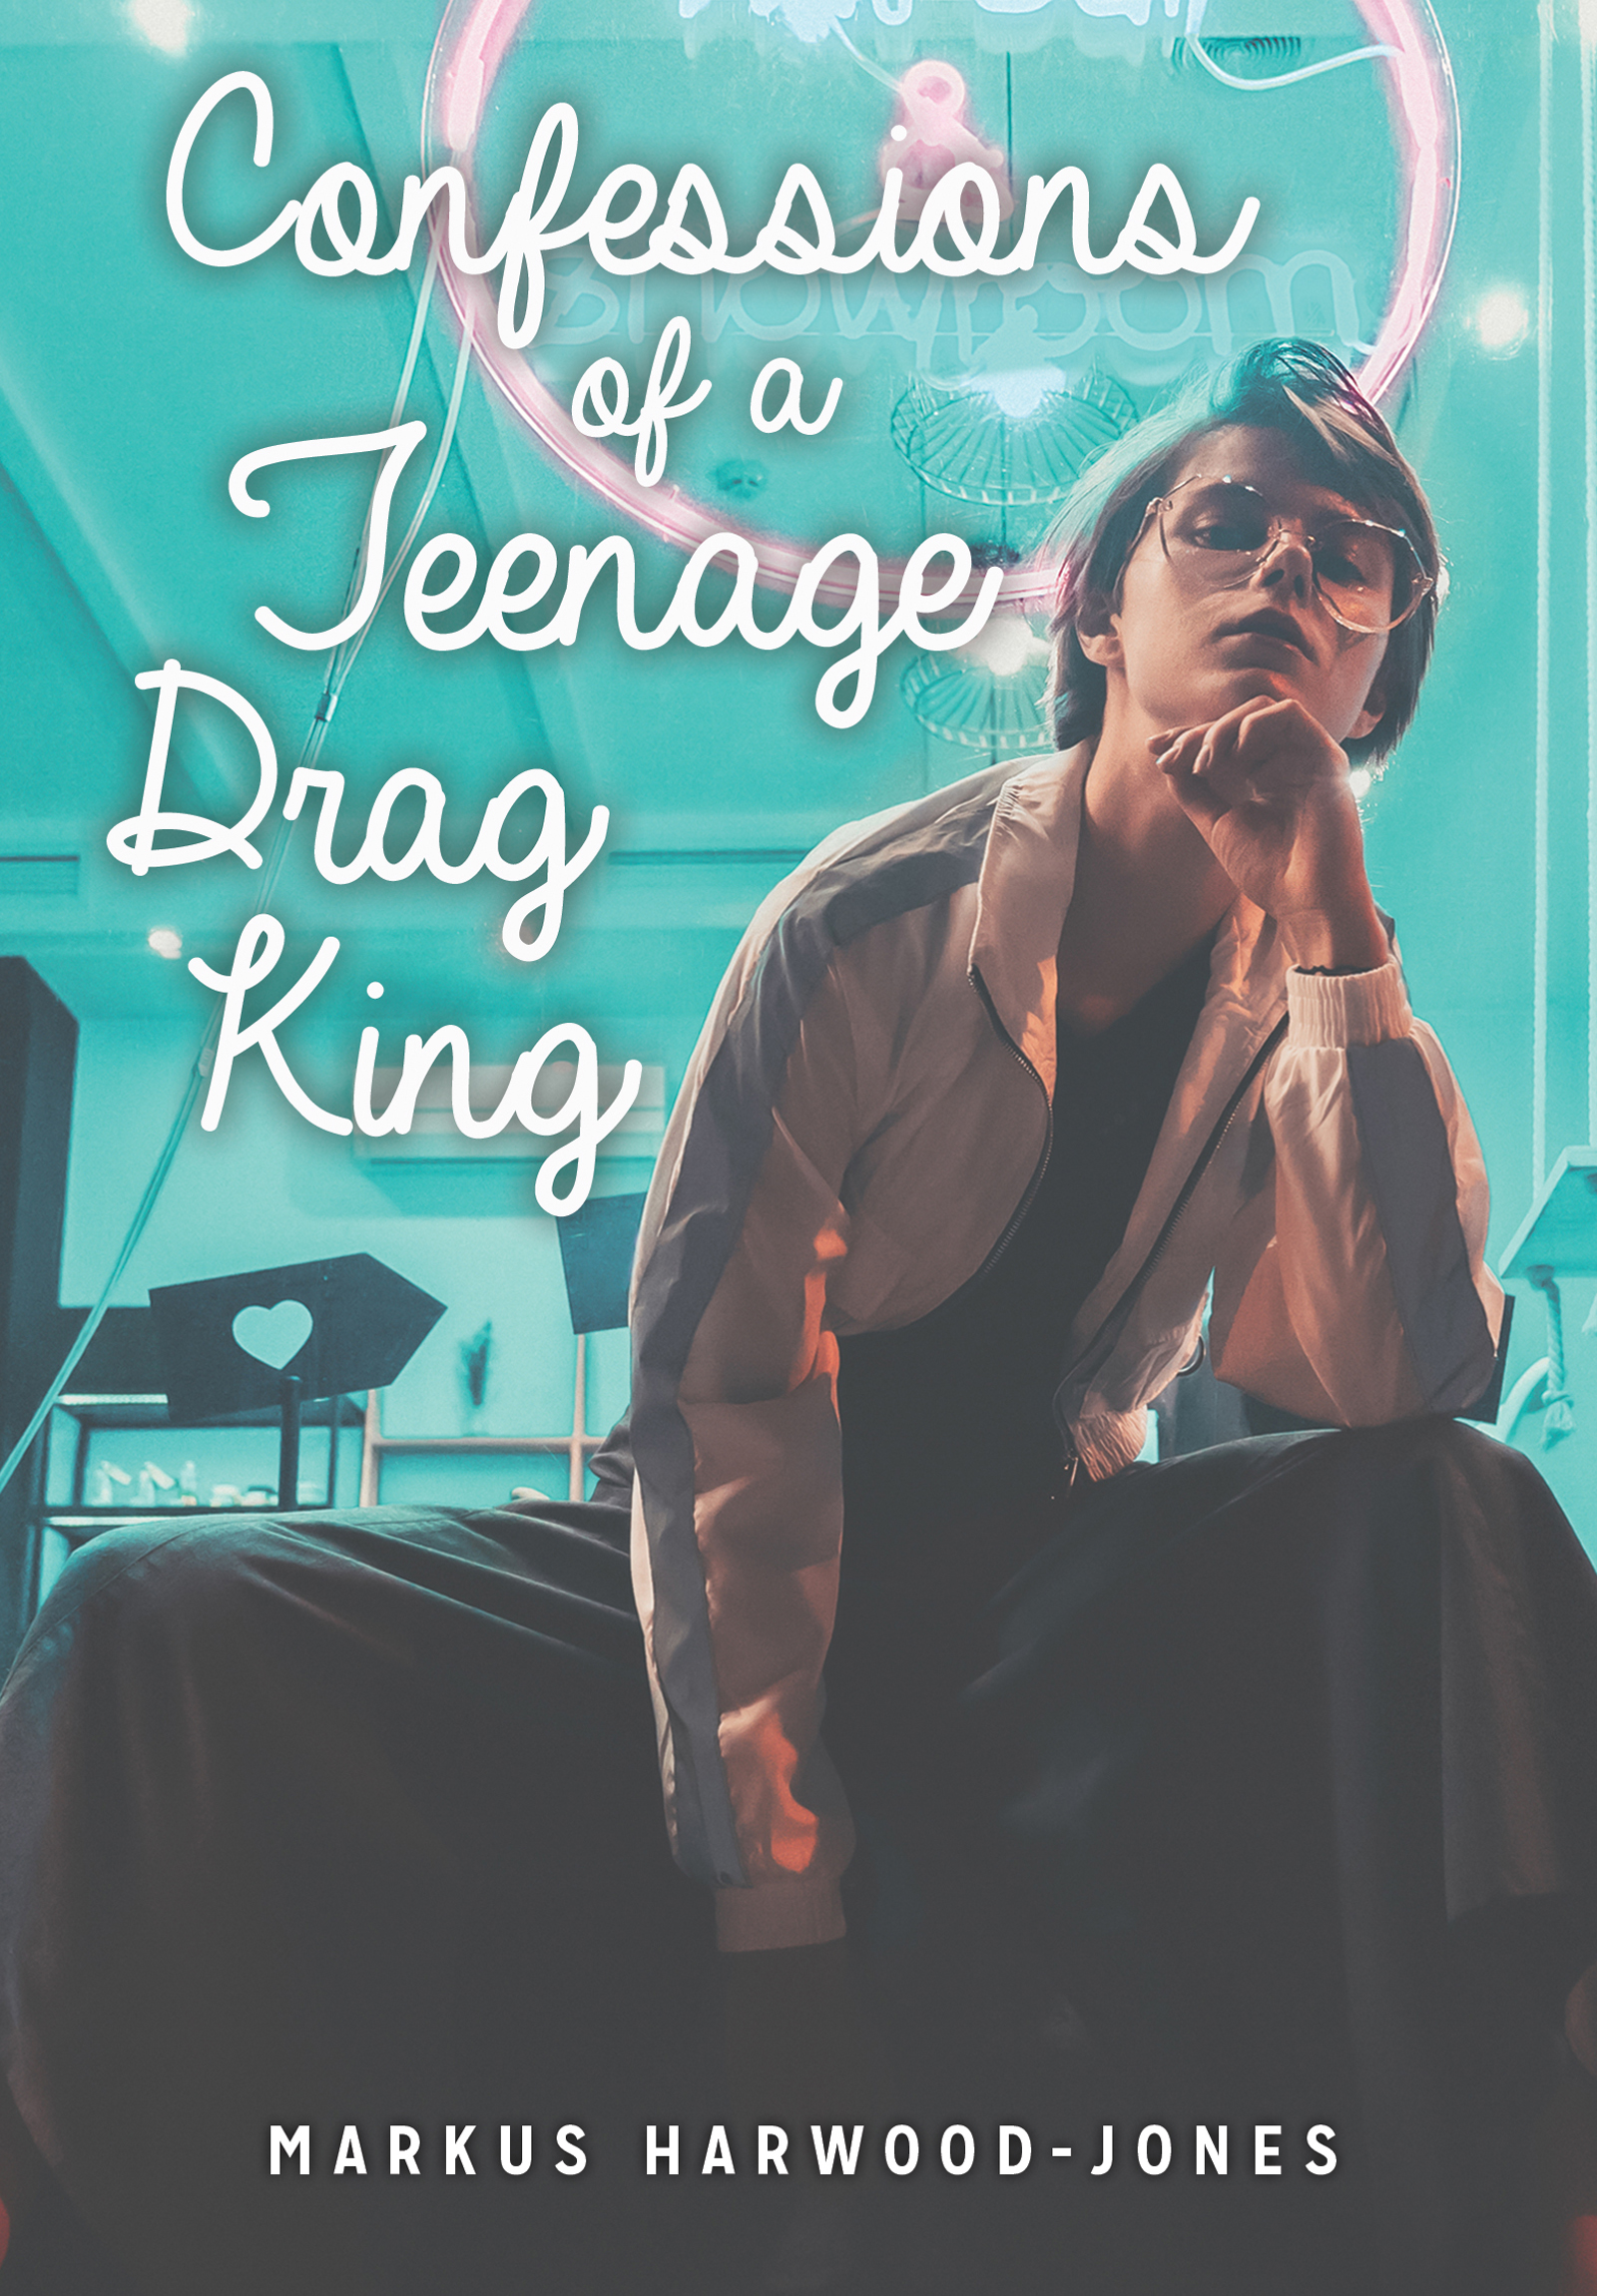 Confessions of a Teenage Drag King – eBook